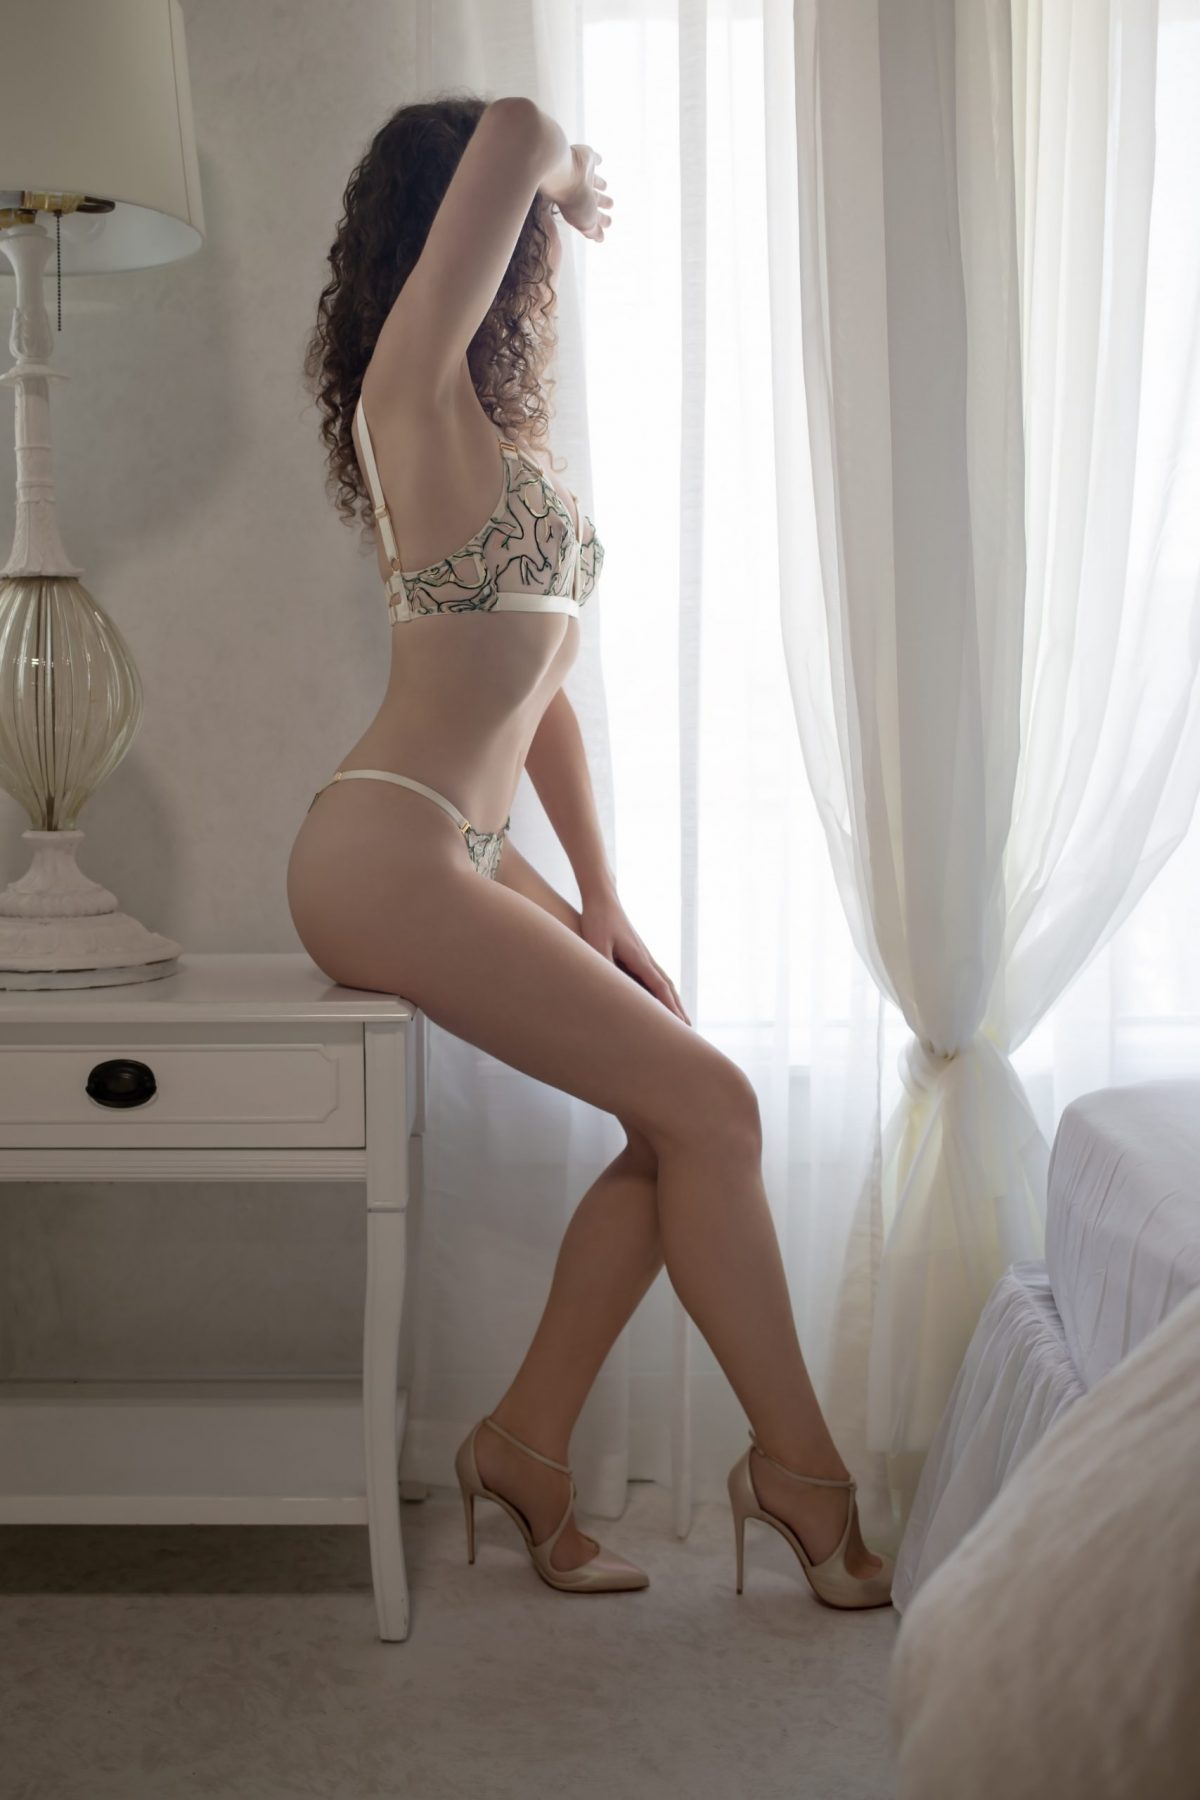 Toronto escorts companion upscale Willa Interests Duo Couple-friendly Non-smoking Age Young Figure Slender Tall Breasts Natural Hair Brunette Ethnicity European Tattoos Small Arrival